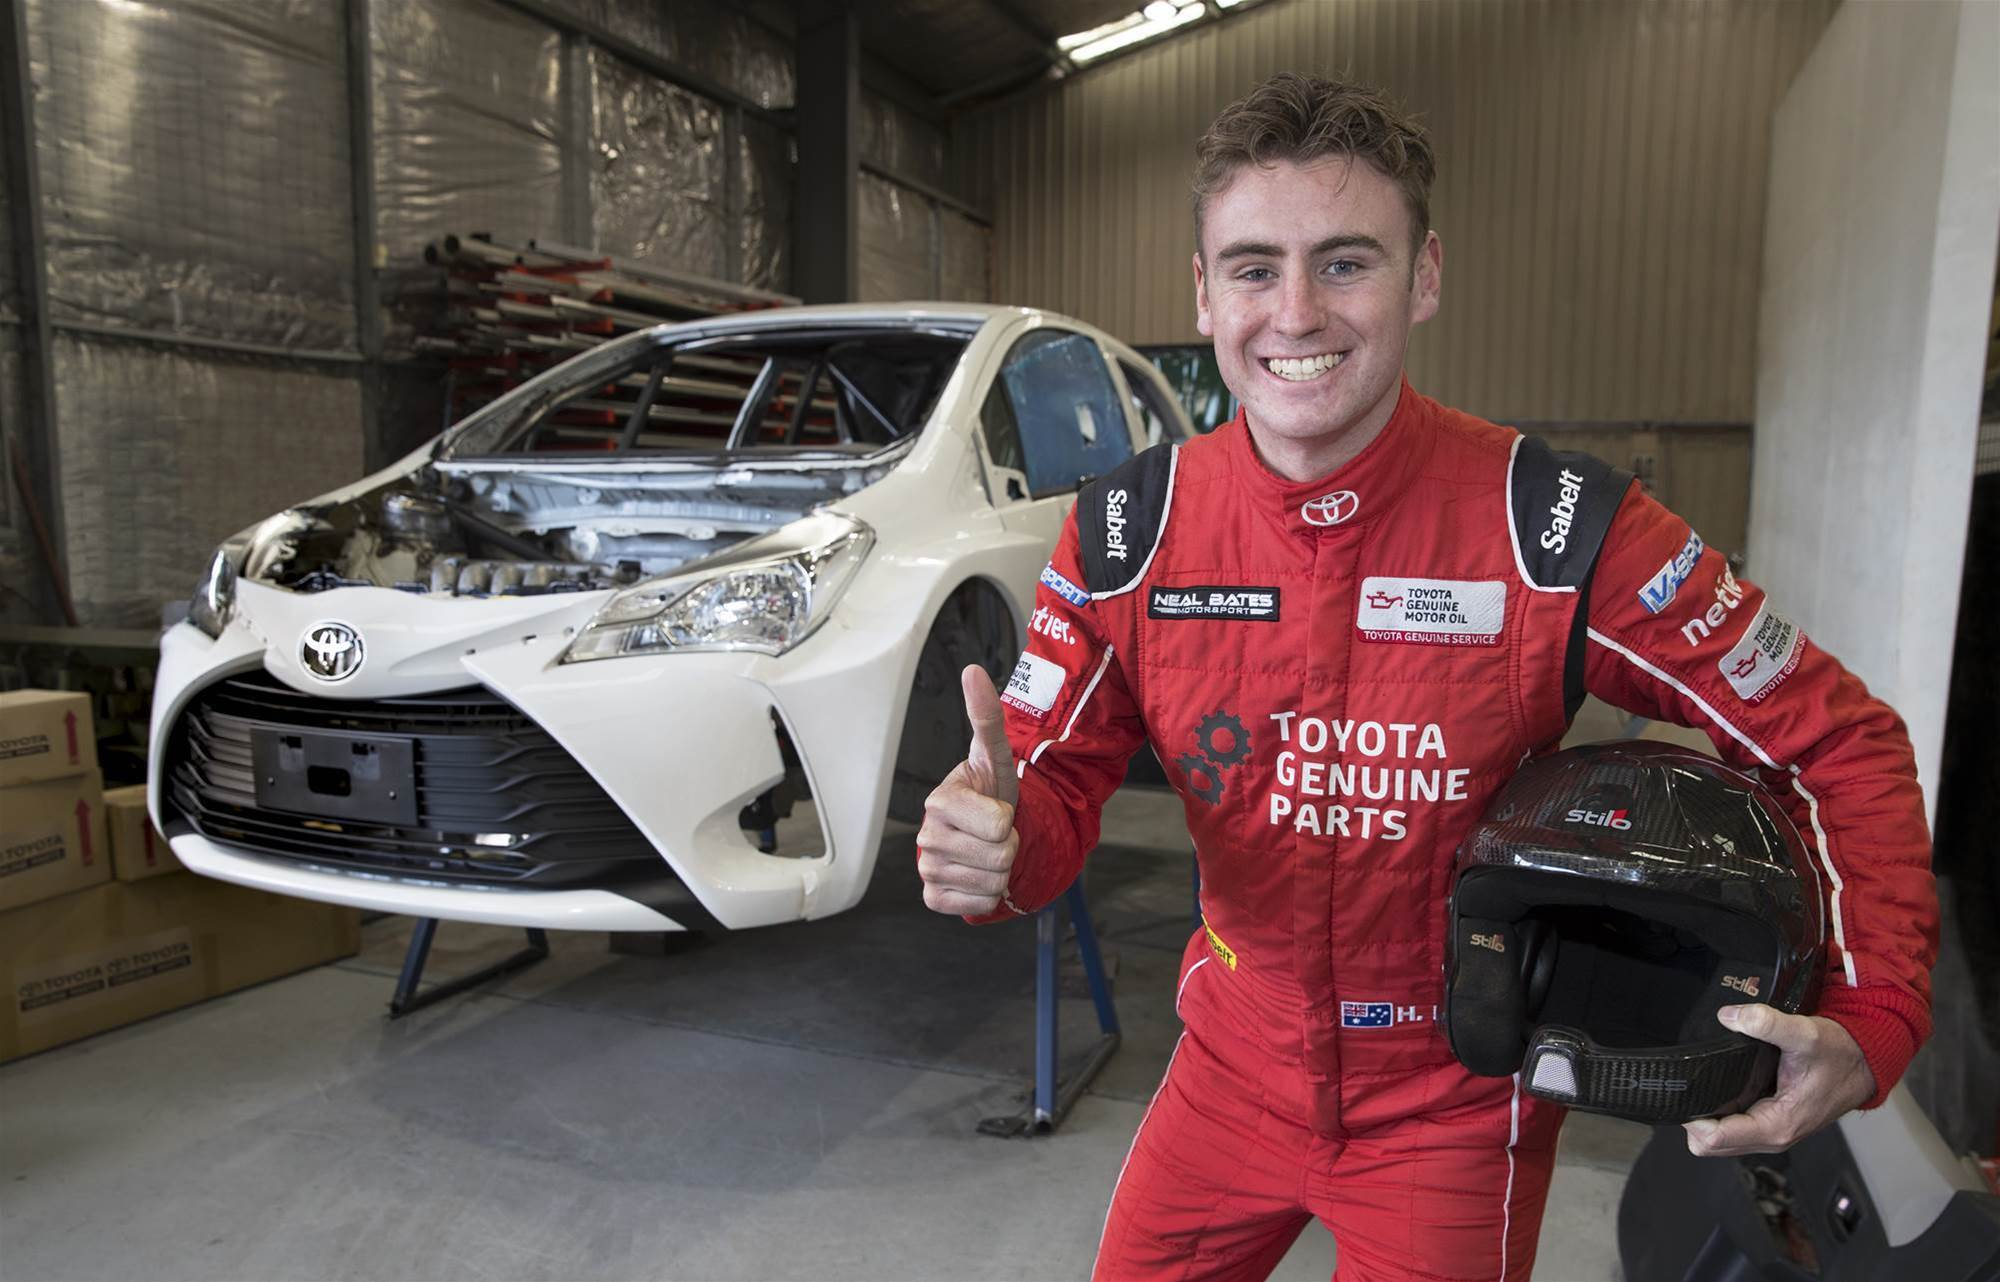 New Yaris for Bates' ARC bid